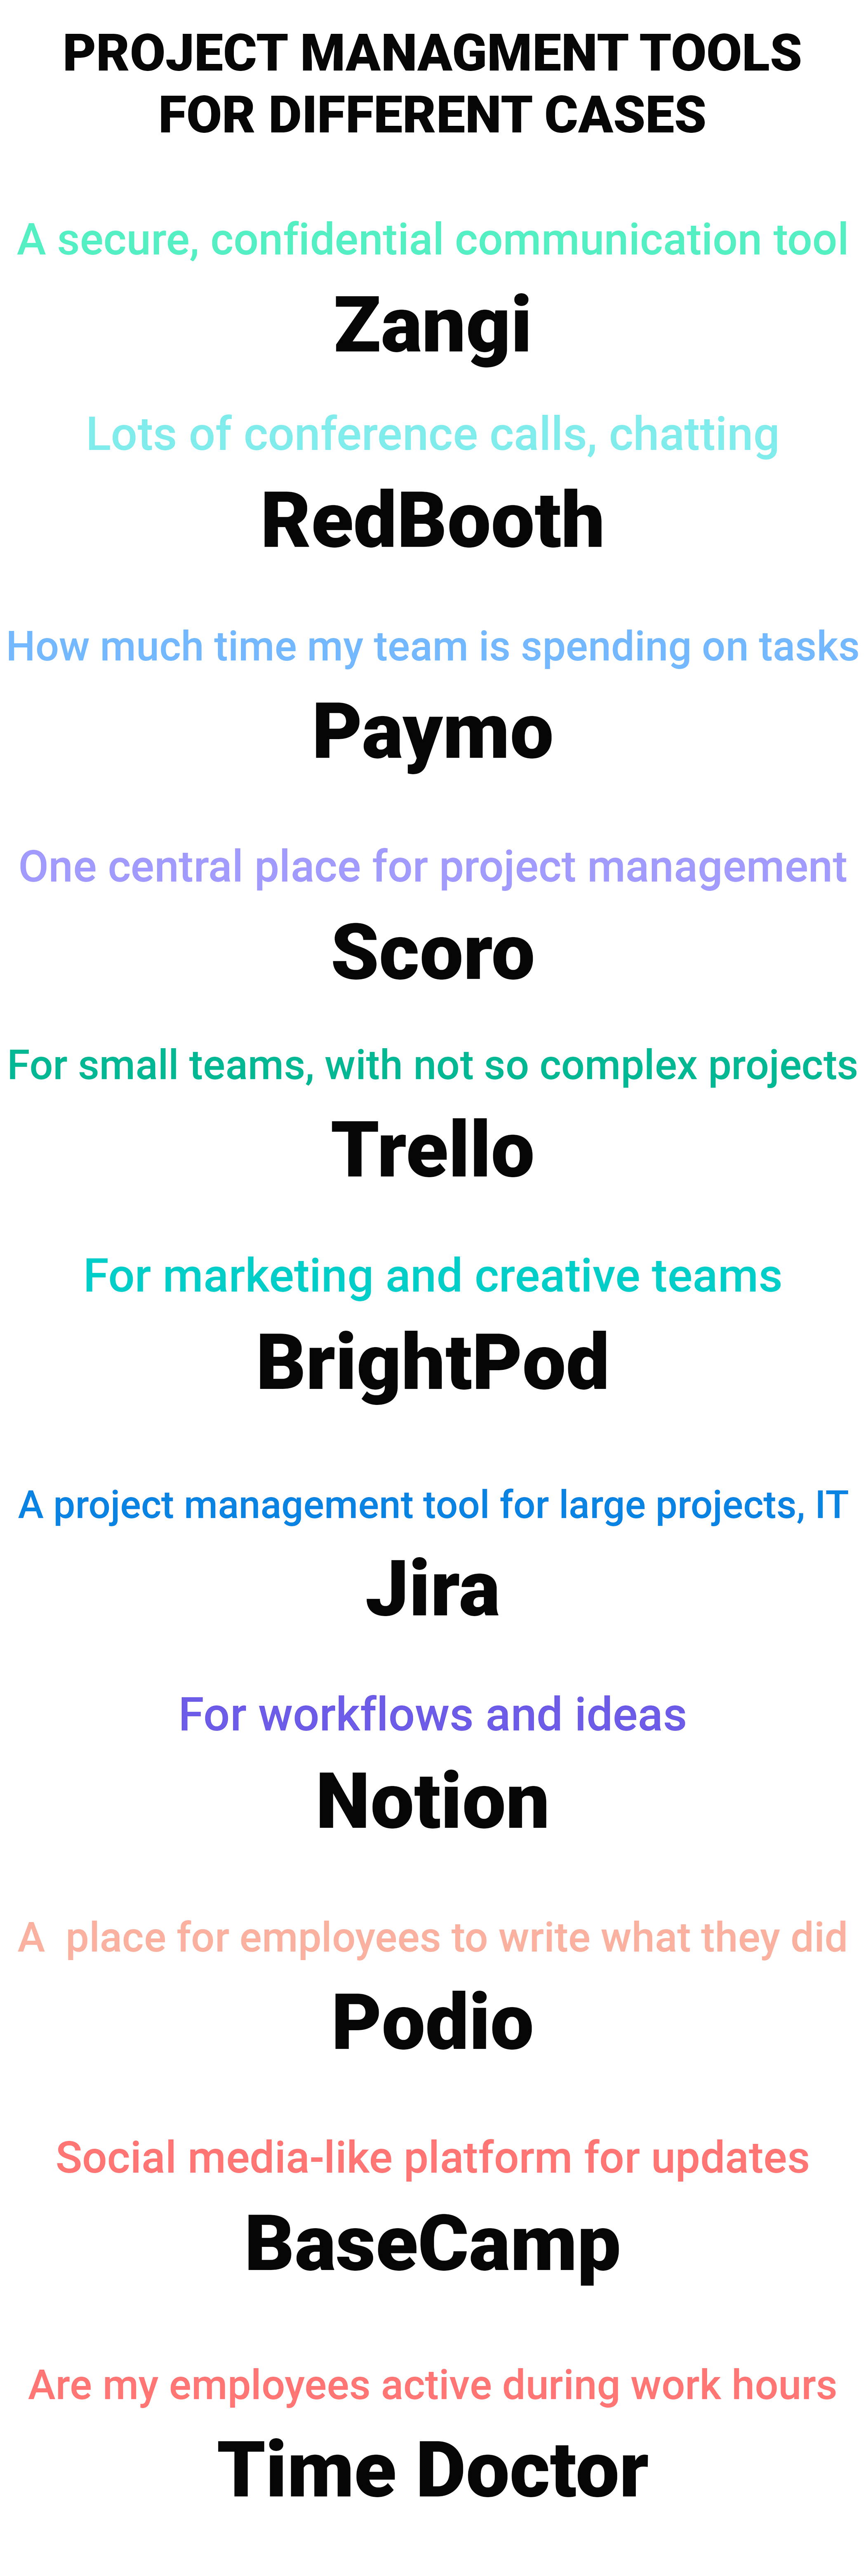 project management tools for different cases and priorities